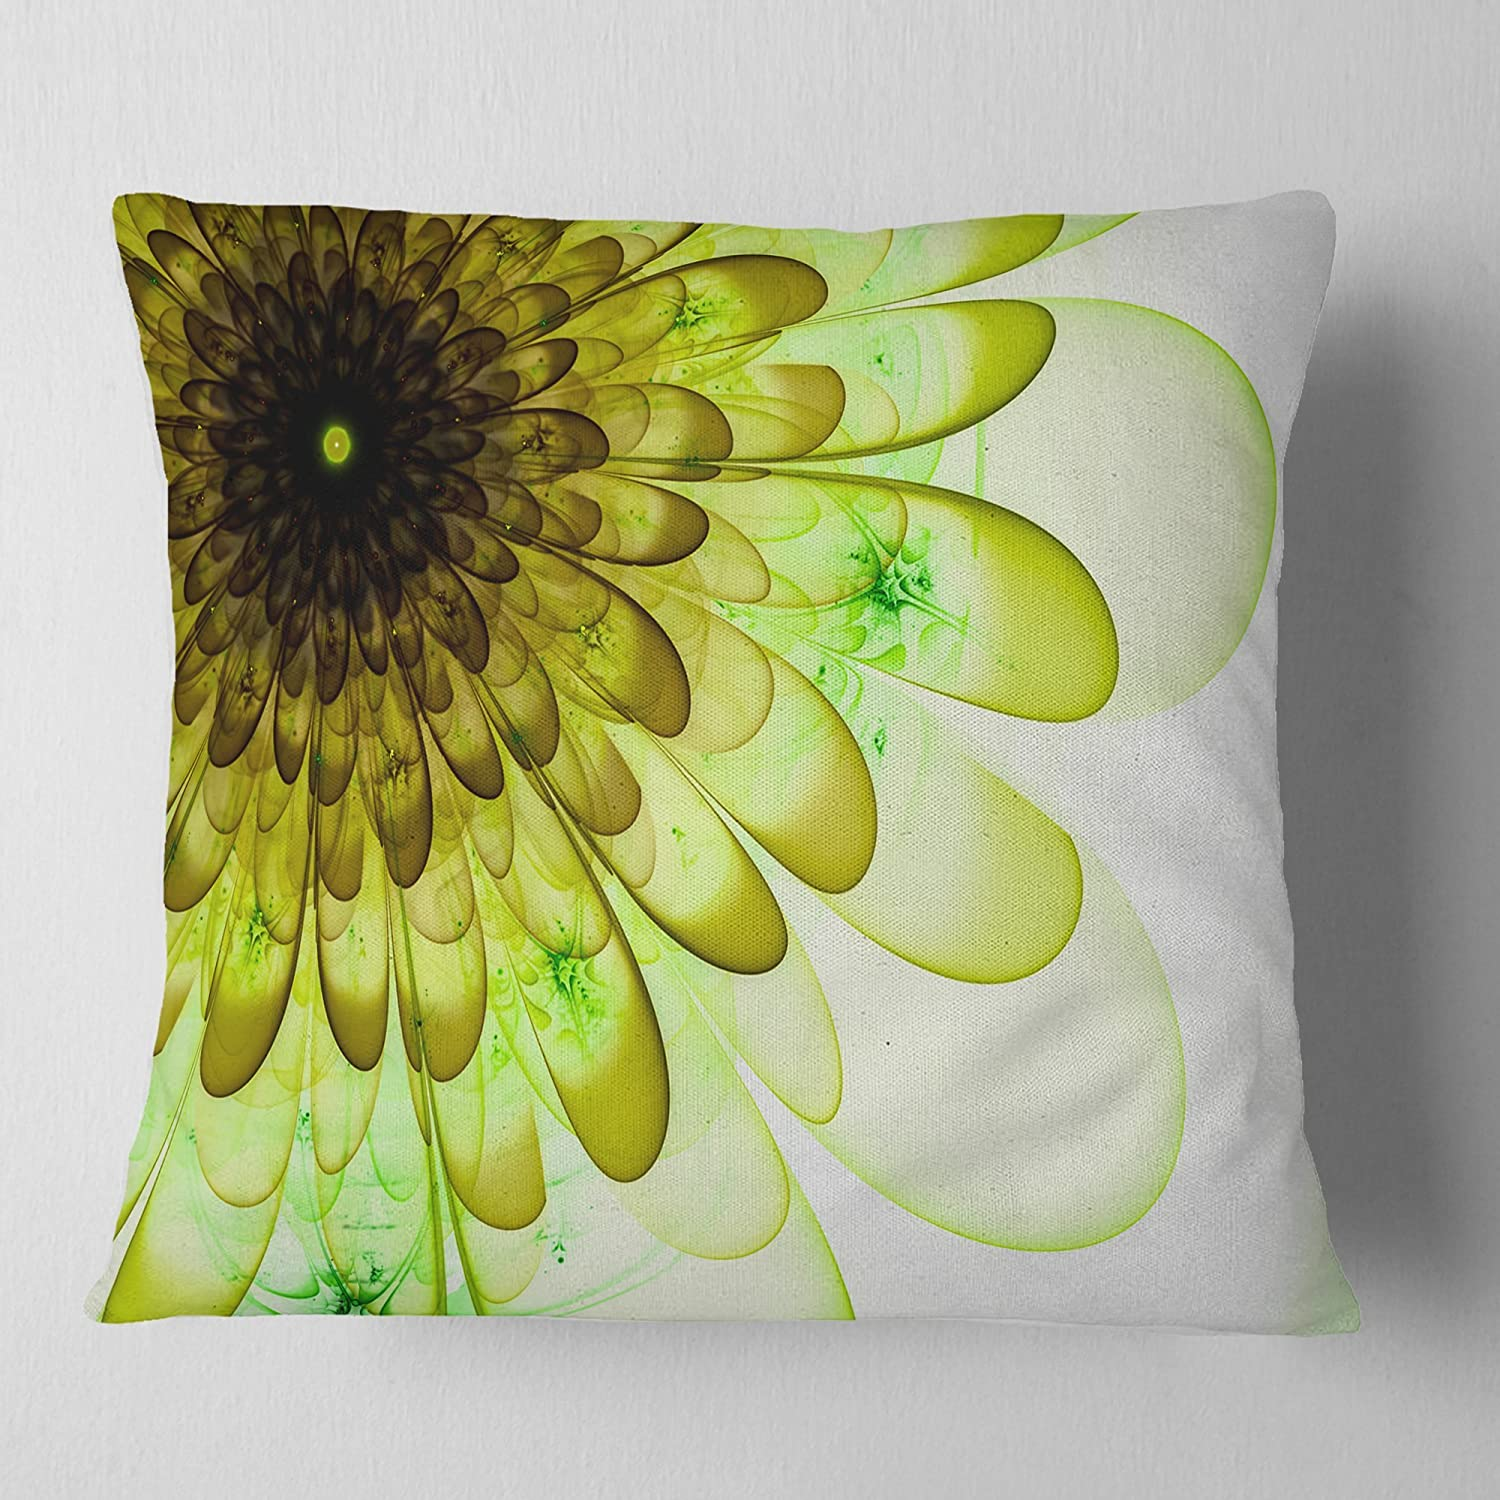 Designart CU12159-18-18 Light Green Digital Flower Petal Close up' Floral Cushion Cover for Living Room, Sofa Throw Pillow 18 in. x 18 in. in